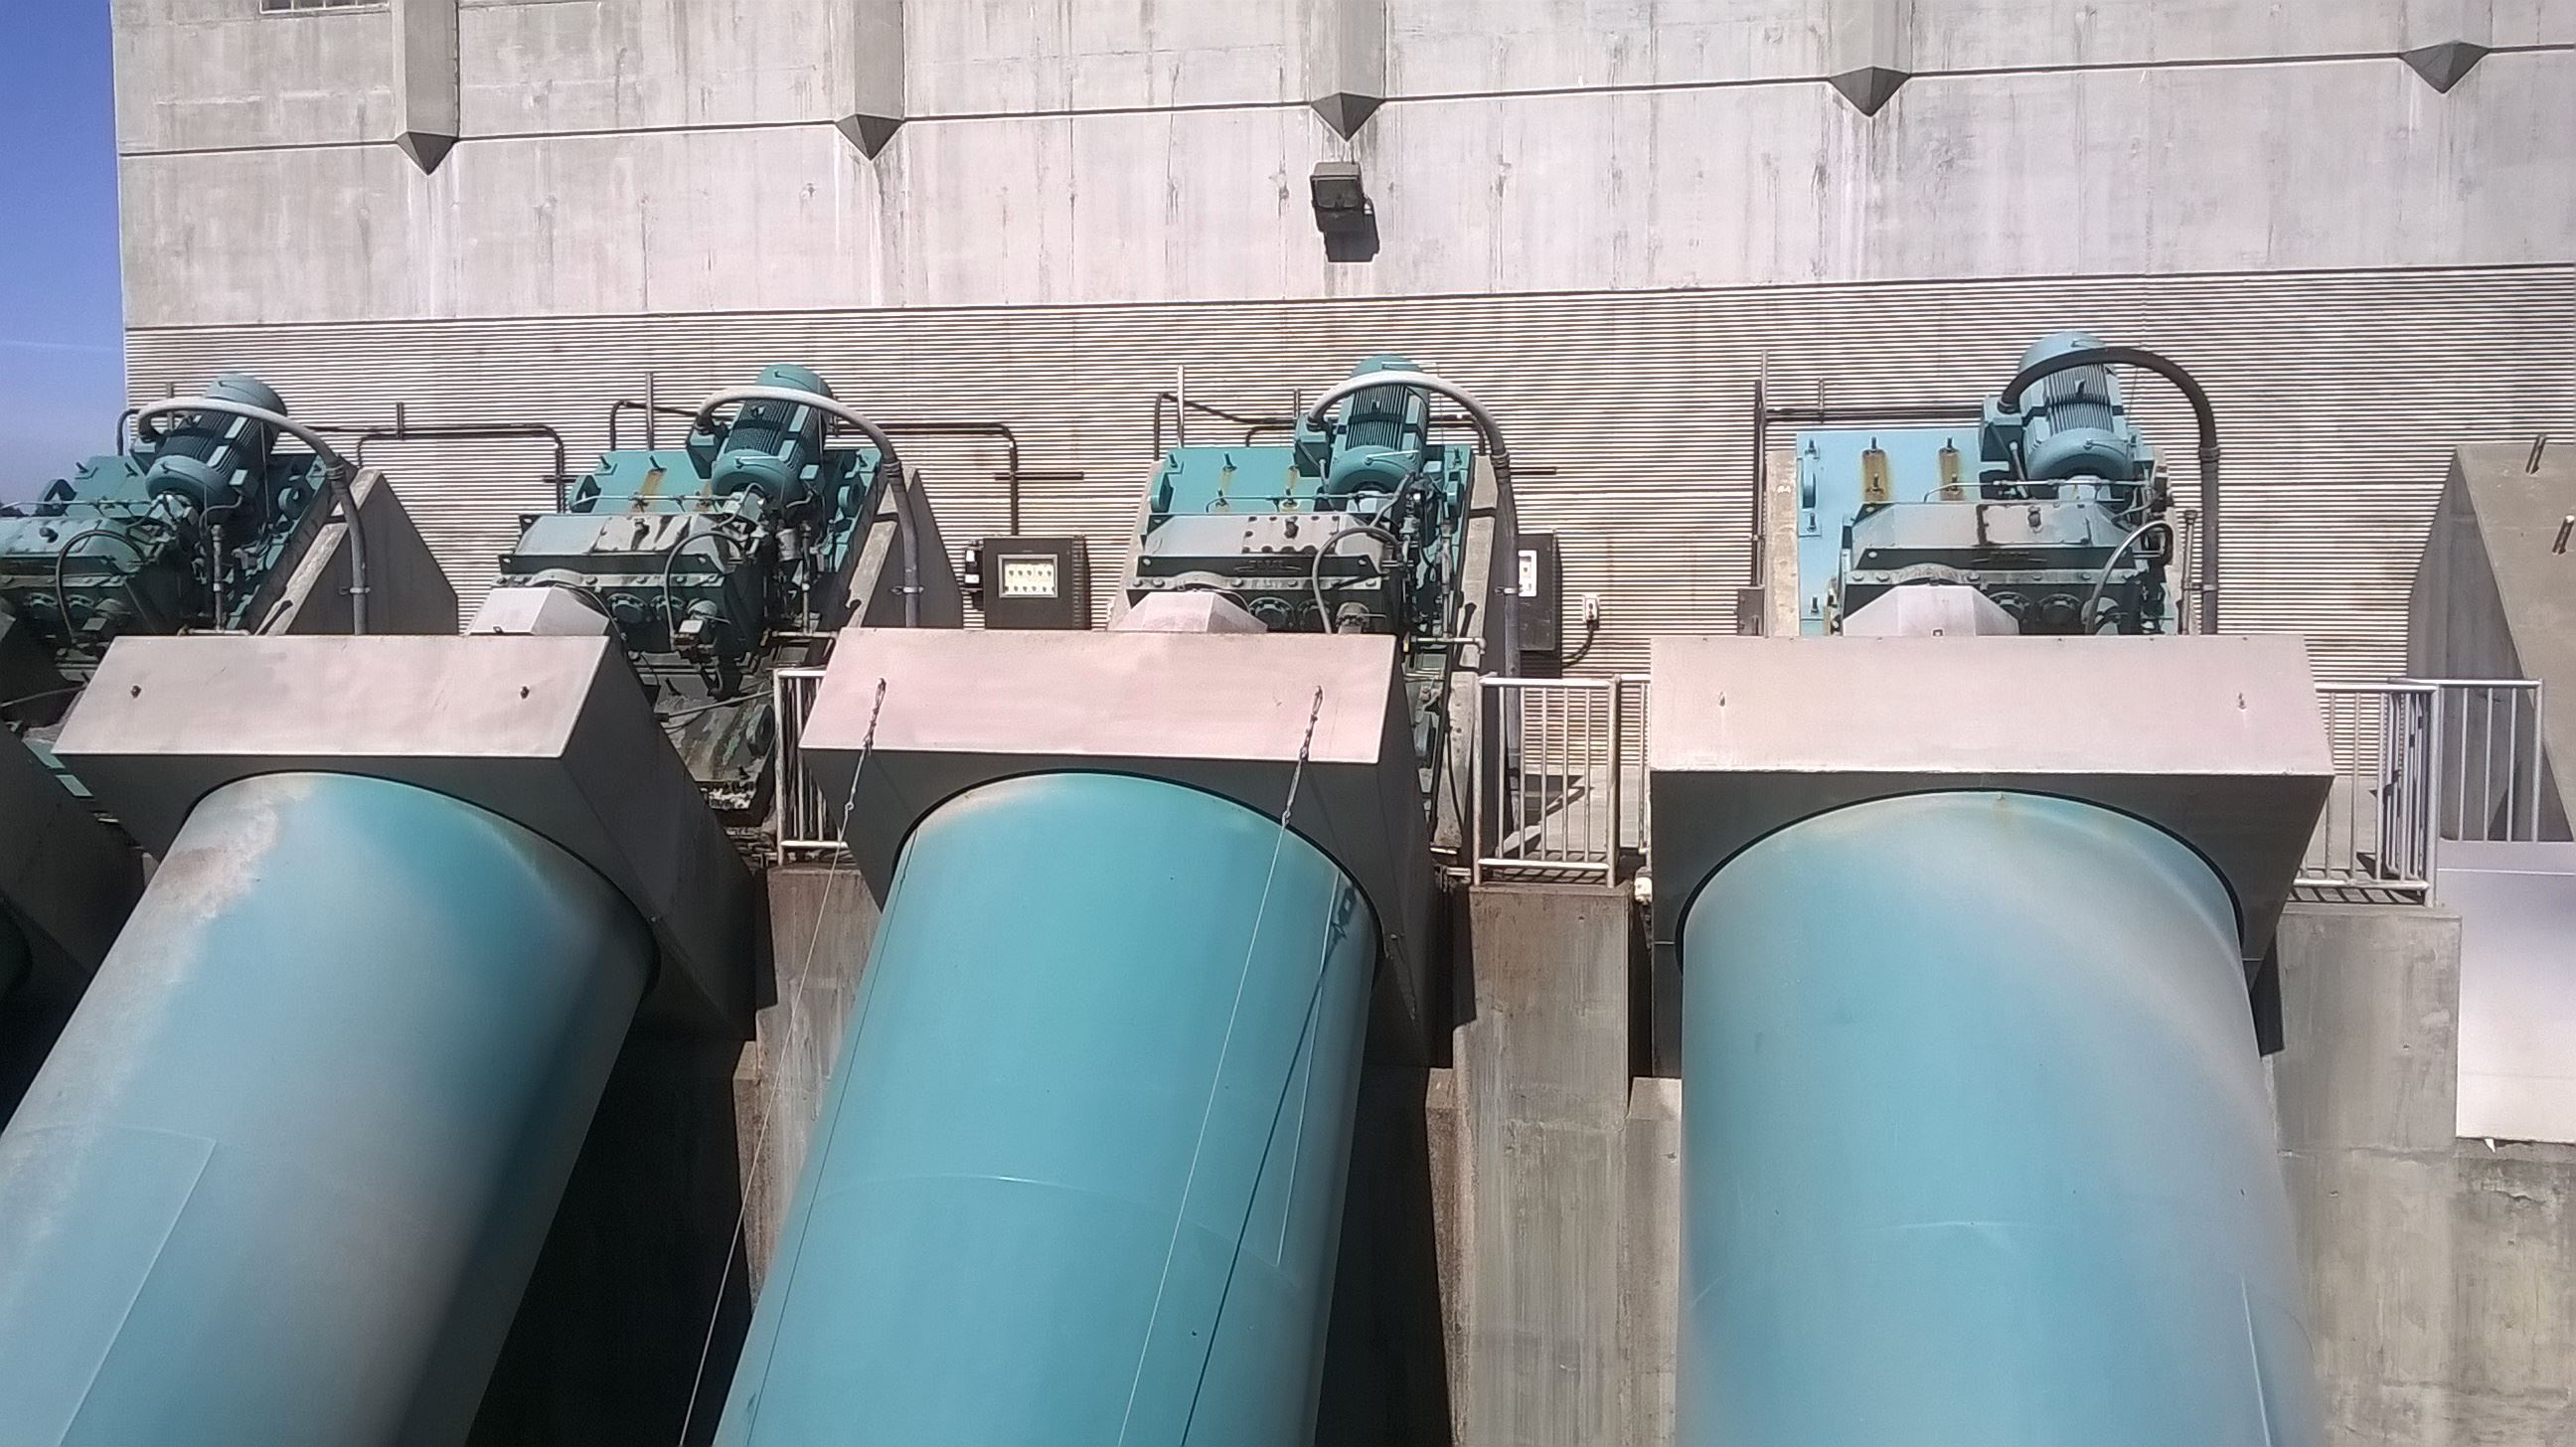 Four large screw pumps pull water up into the treatment facility